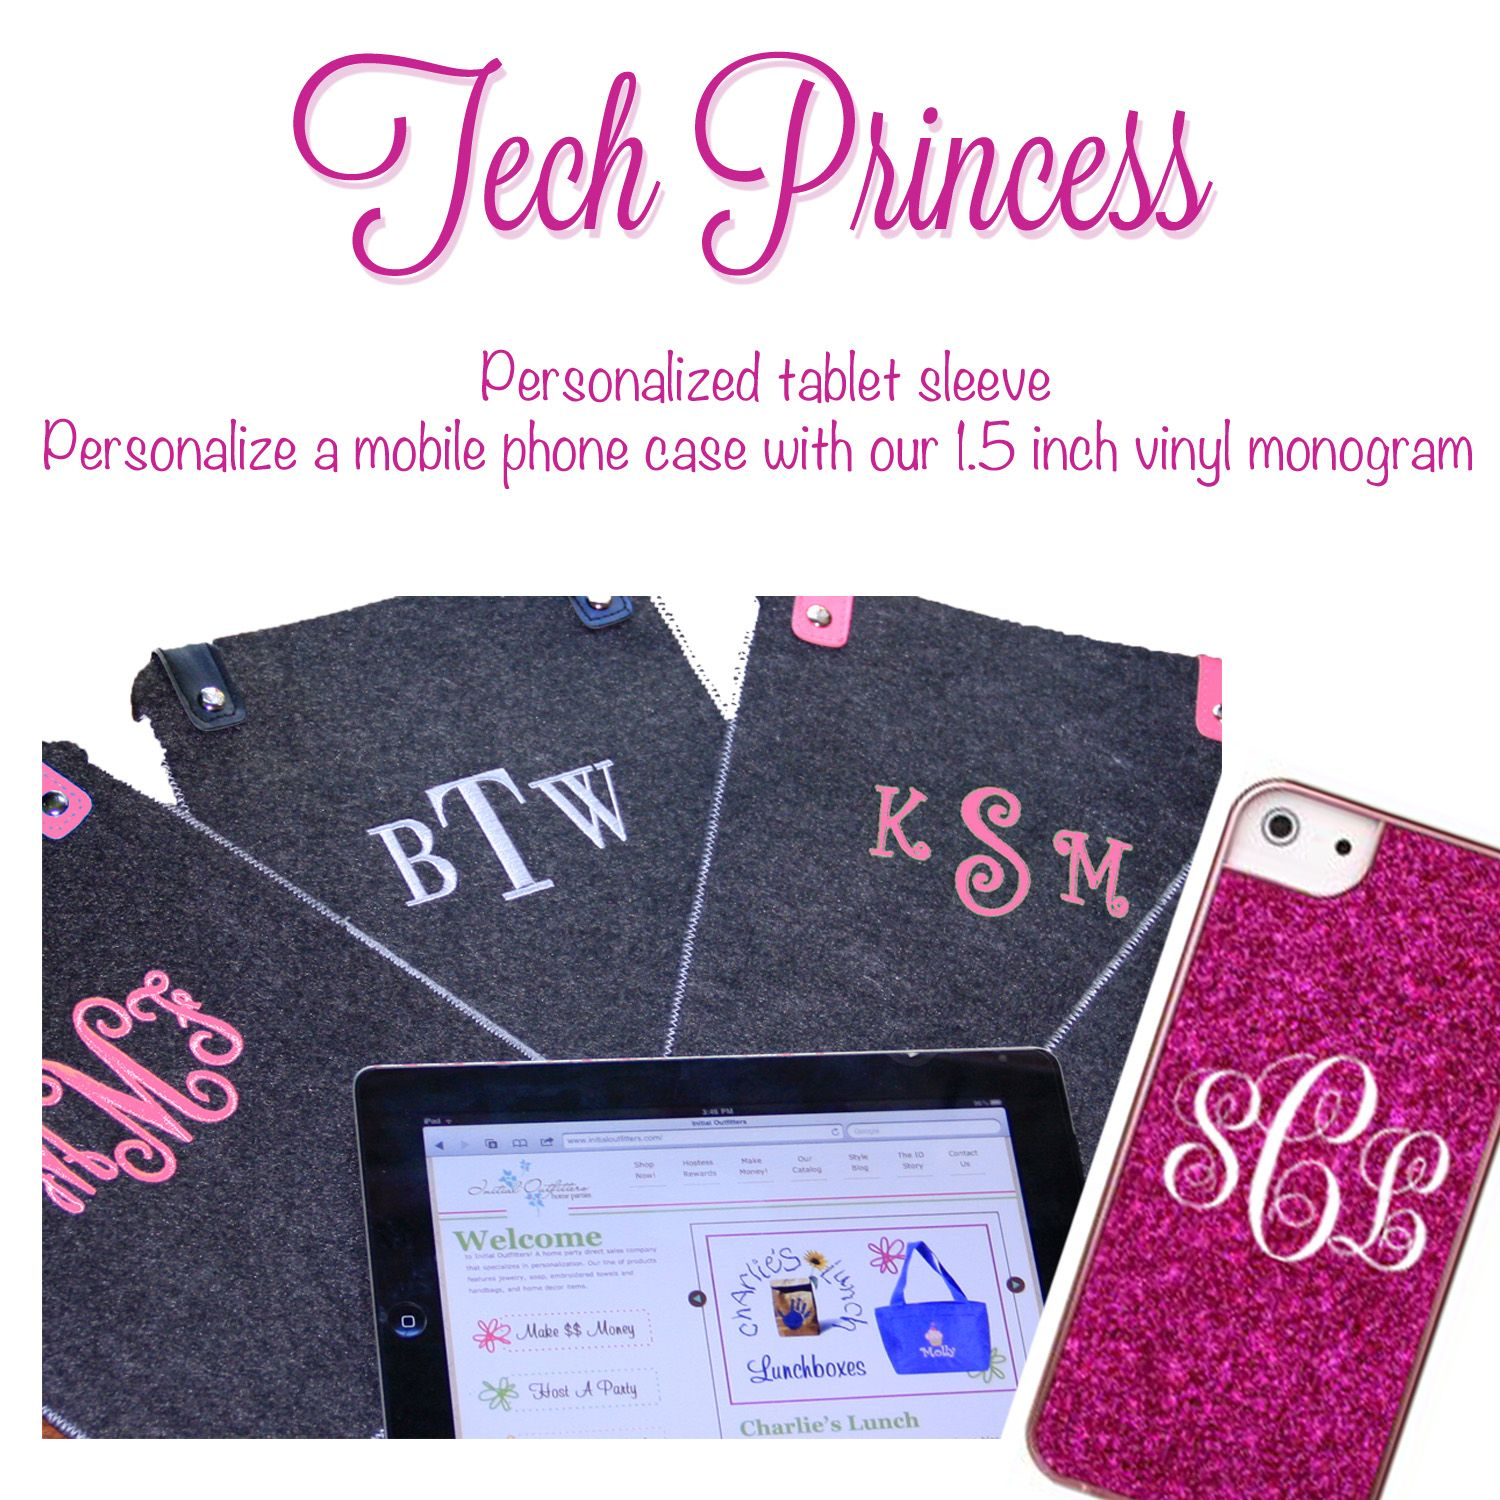 Monogrammed Tablet Sleeve And Personalize Cell Phone With Vinyl Monogram Vinyl Monogram Tablet Sleeve Personalised